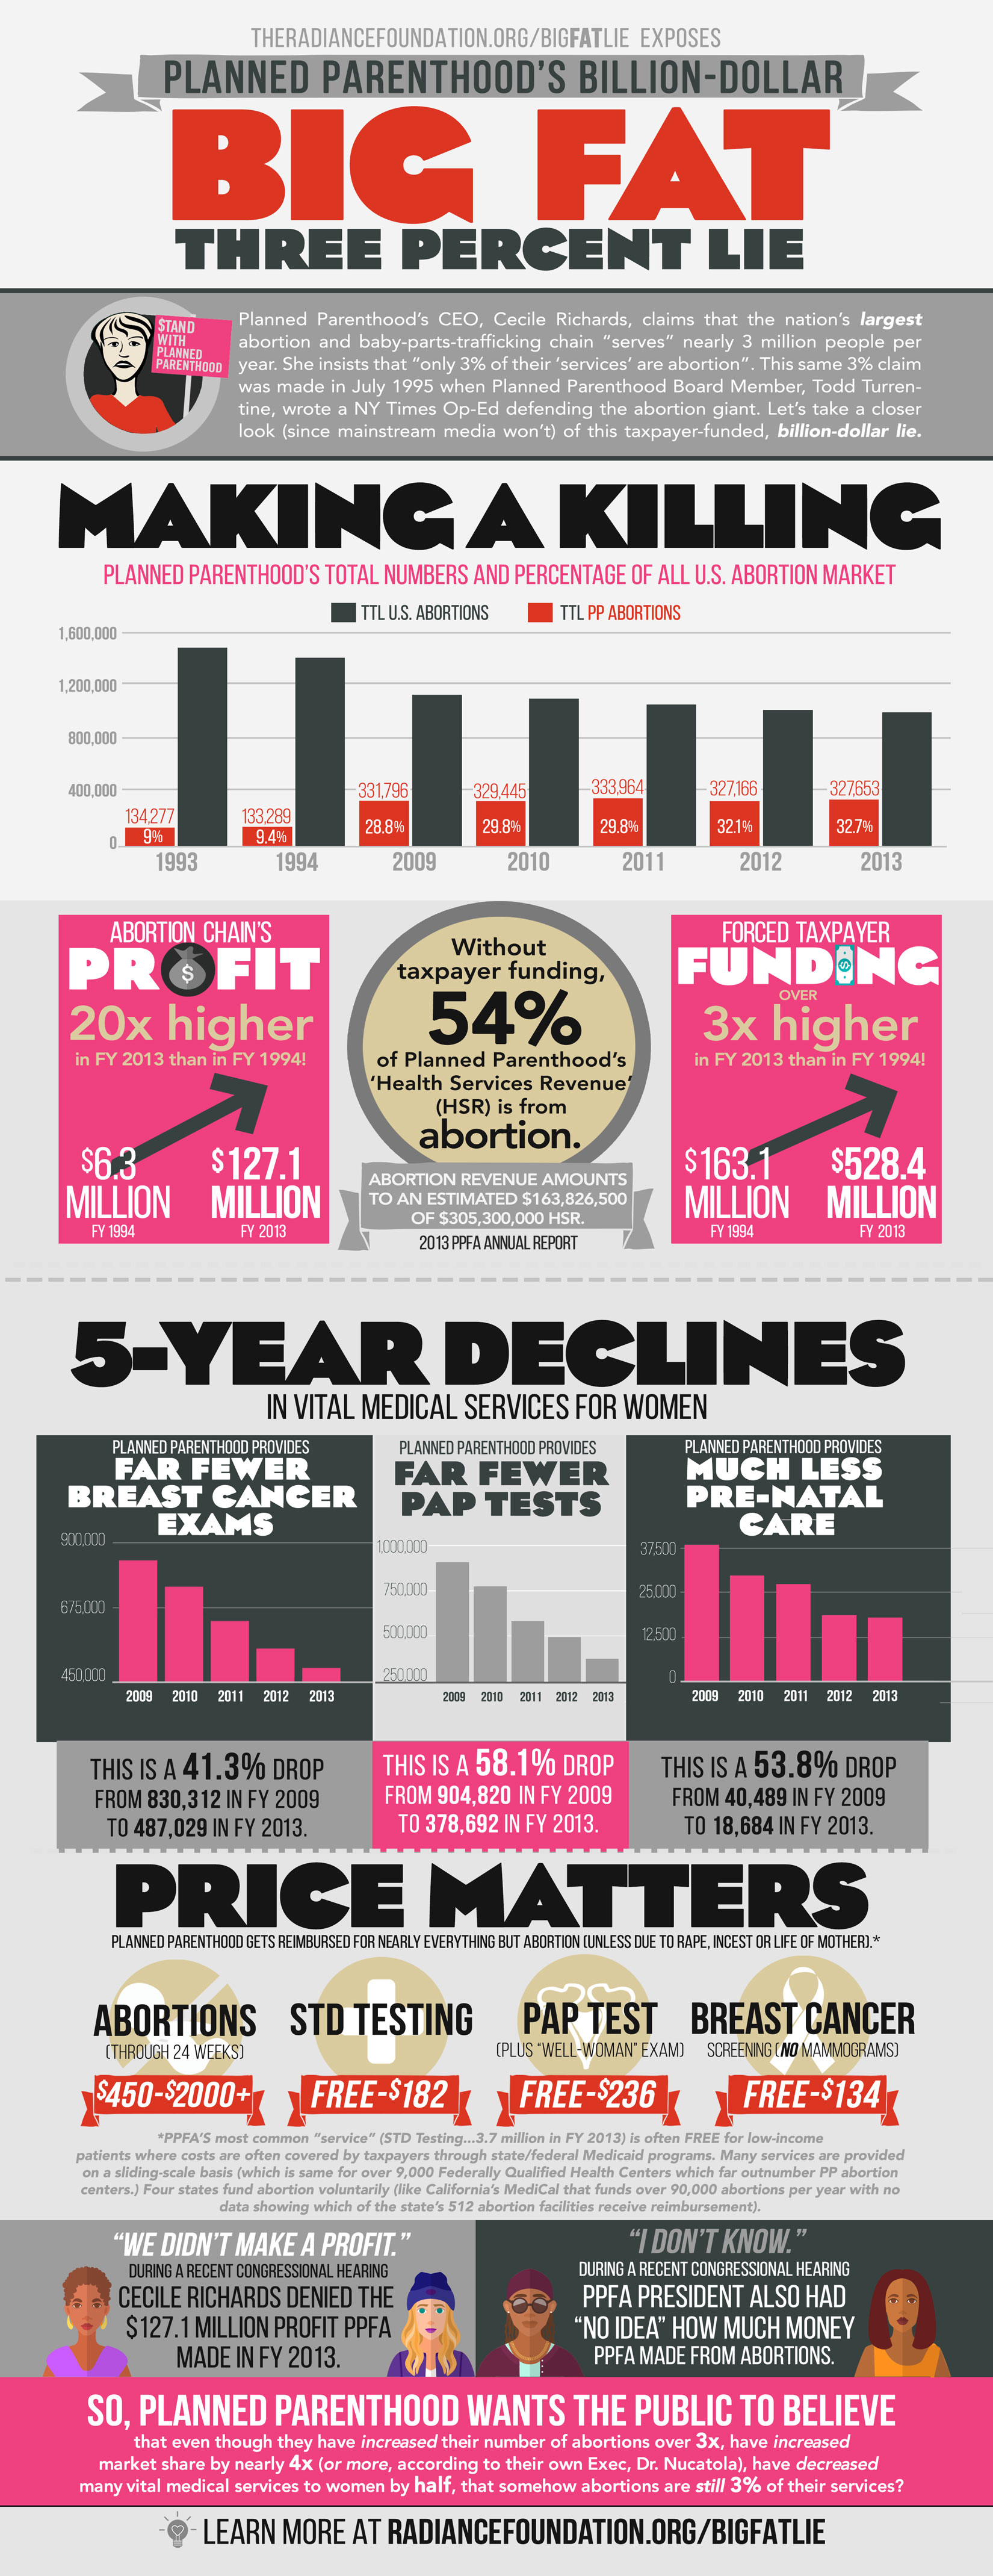 """""""Planned Parenthood's Big Fat 3% Lie"""" by The Radiance Foundation"""